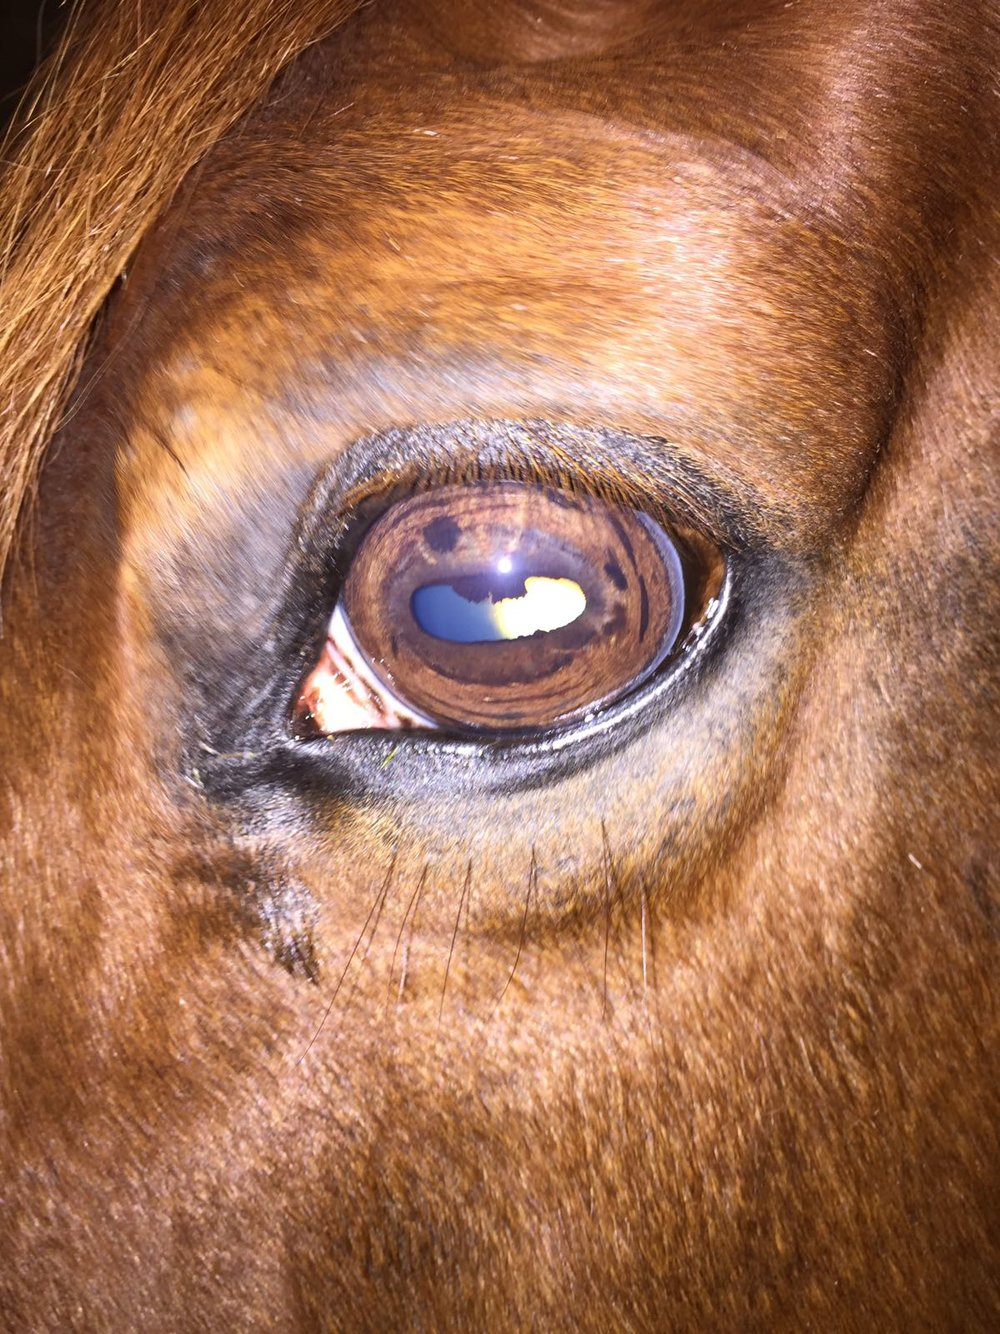 "The marks in this mares eye are quite bad and she will have been very uncomfortable for a long time. The marks shows head trauma so is probably a head shaker. On examination of both eyes she showed a completely toxic digestion, pain in her ovaries and uterus and shows lung and kidney damage along with many other painfull areas due to stress through her back muscles. All these issues can be addressed with herbs if only the owner knew what was going on and not accepted that ""it's just the way she is.....highly strung and moody and bucks for Britain....but that's just the way she has always been and you learn to deal with it""..............."